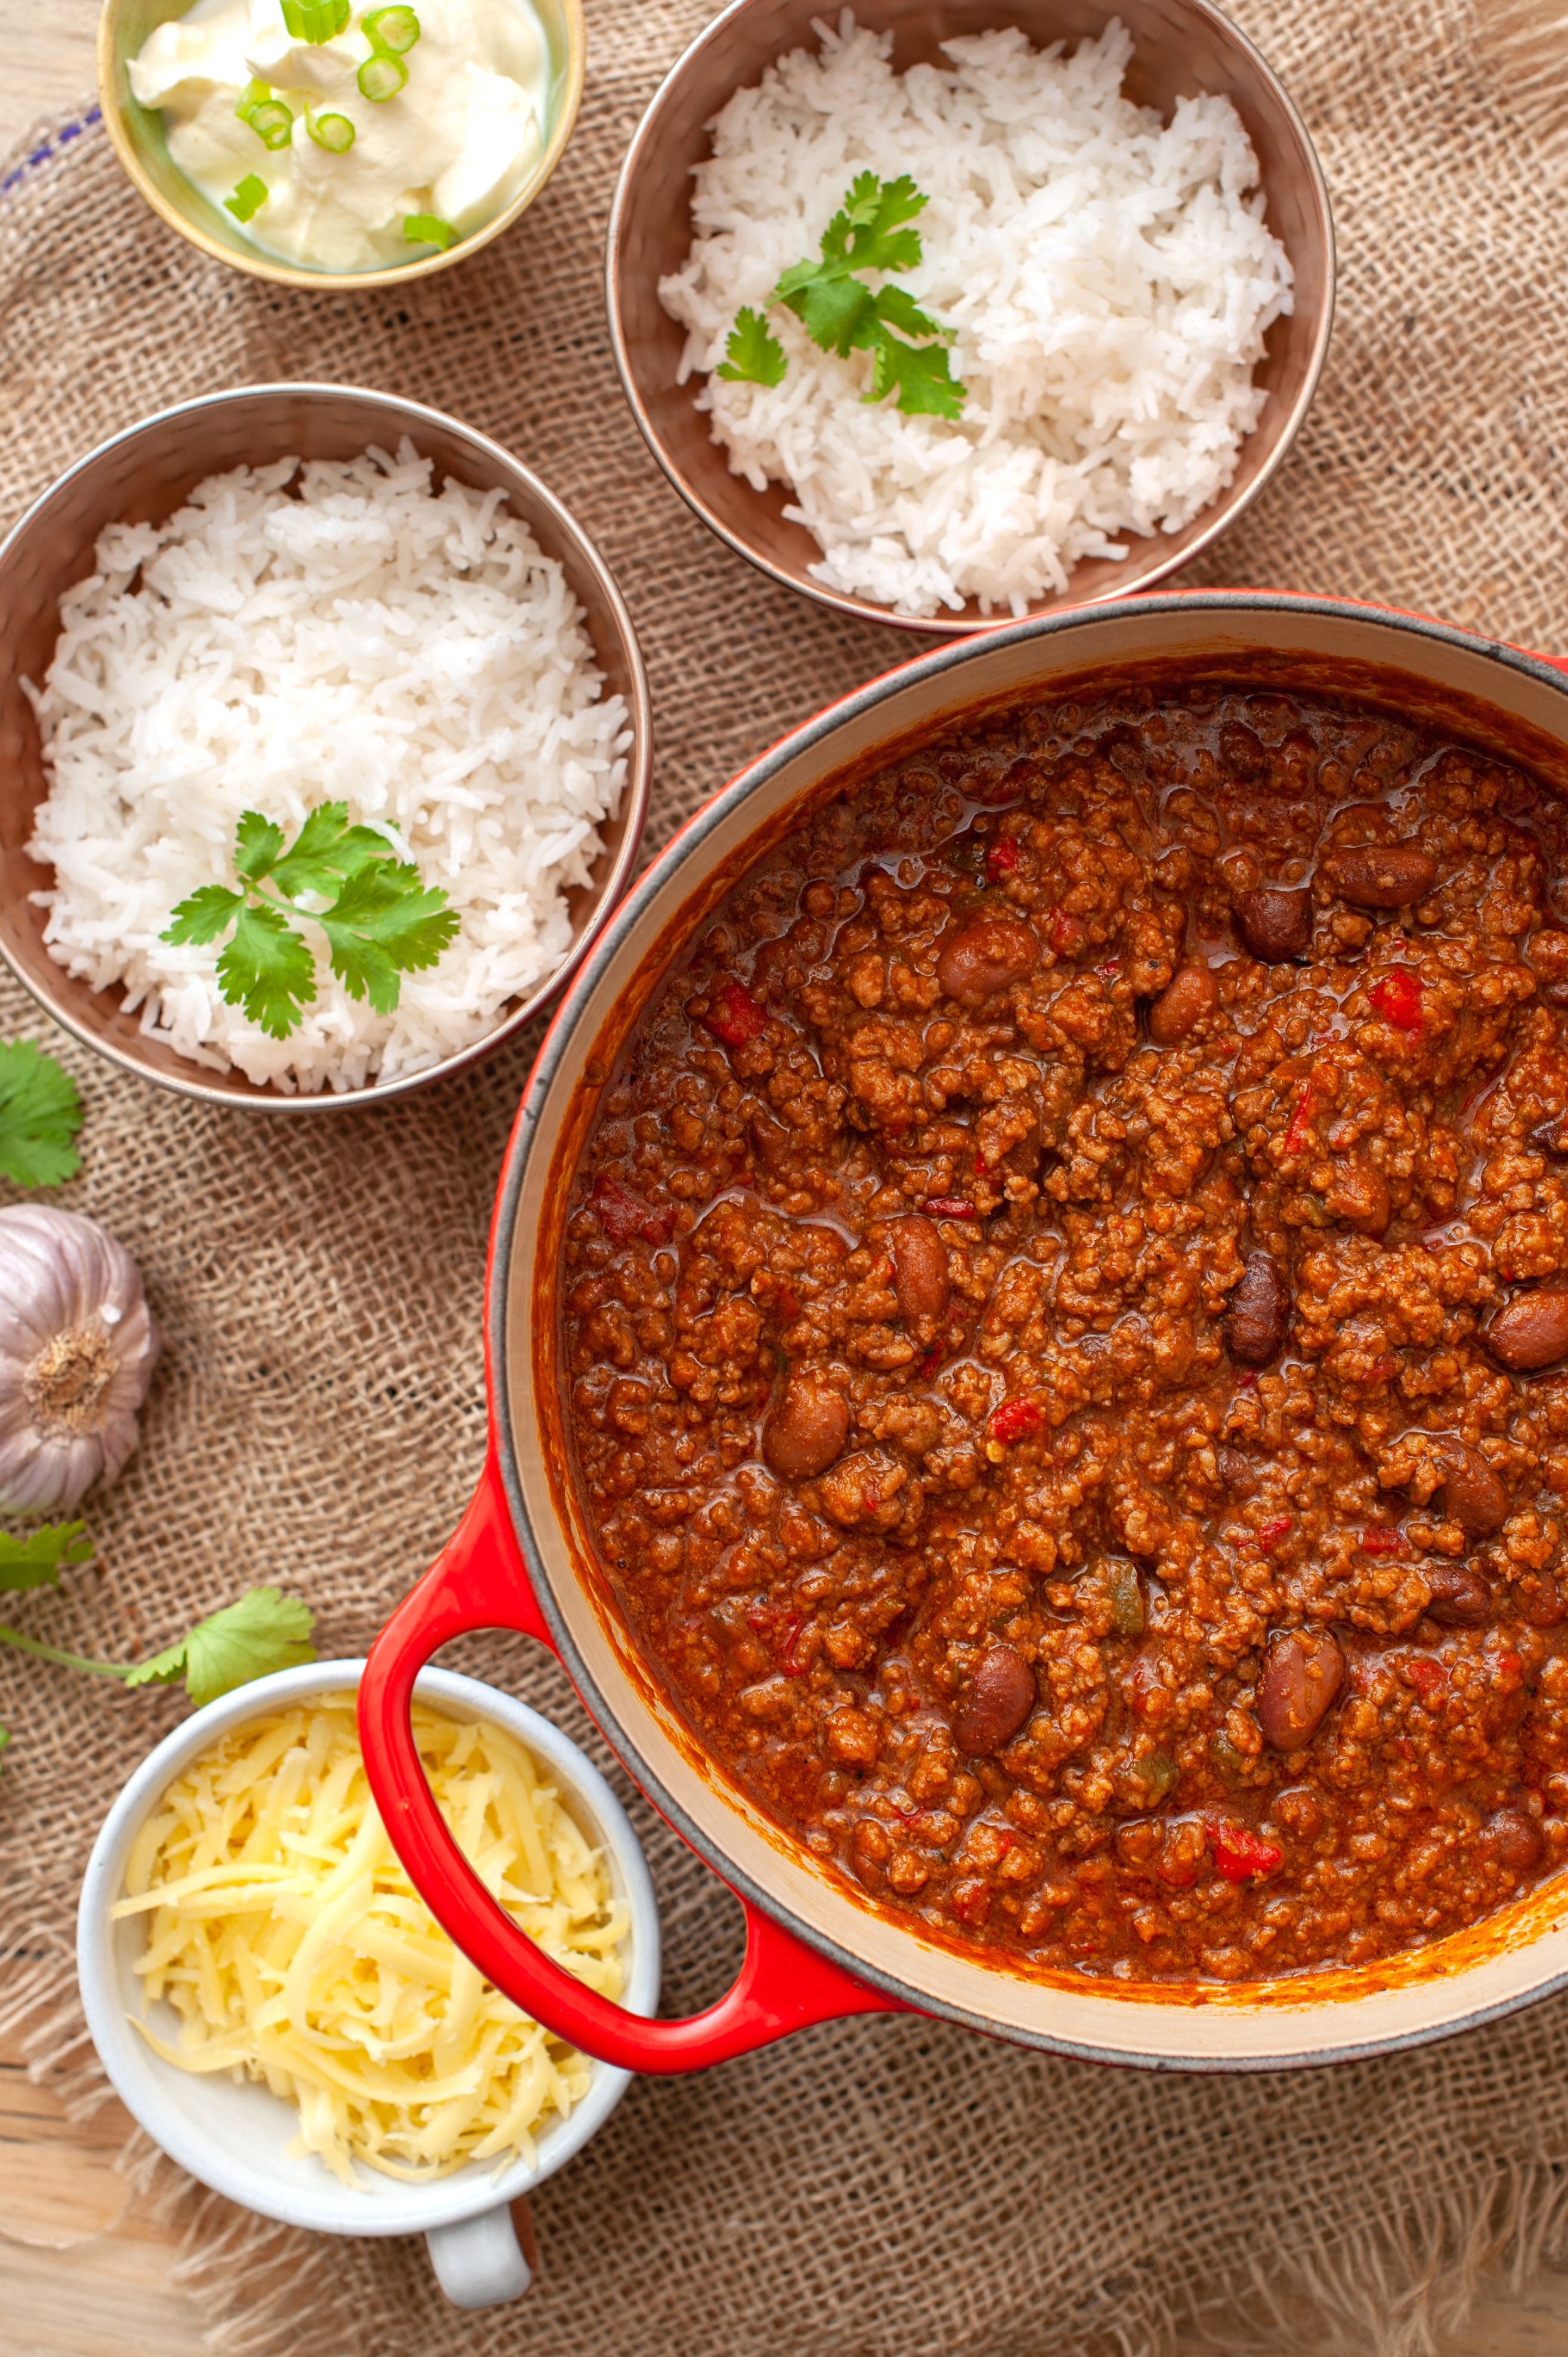 Low Carb Meaty Chili Recipe